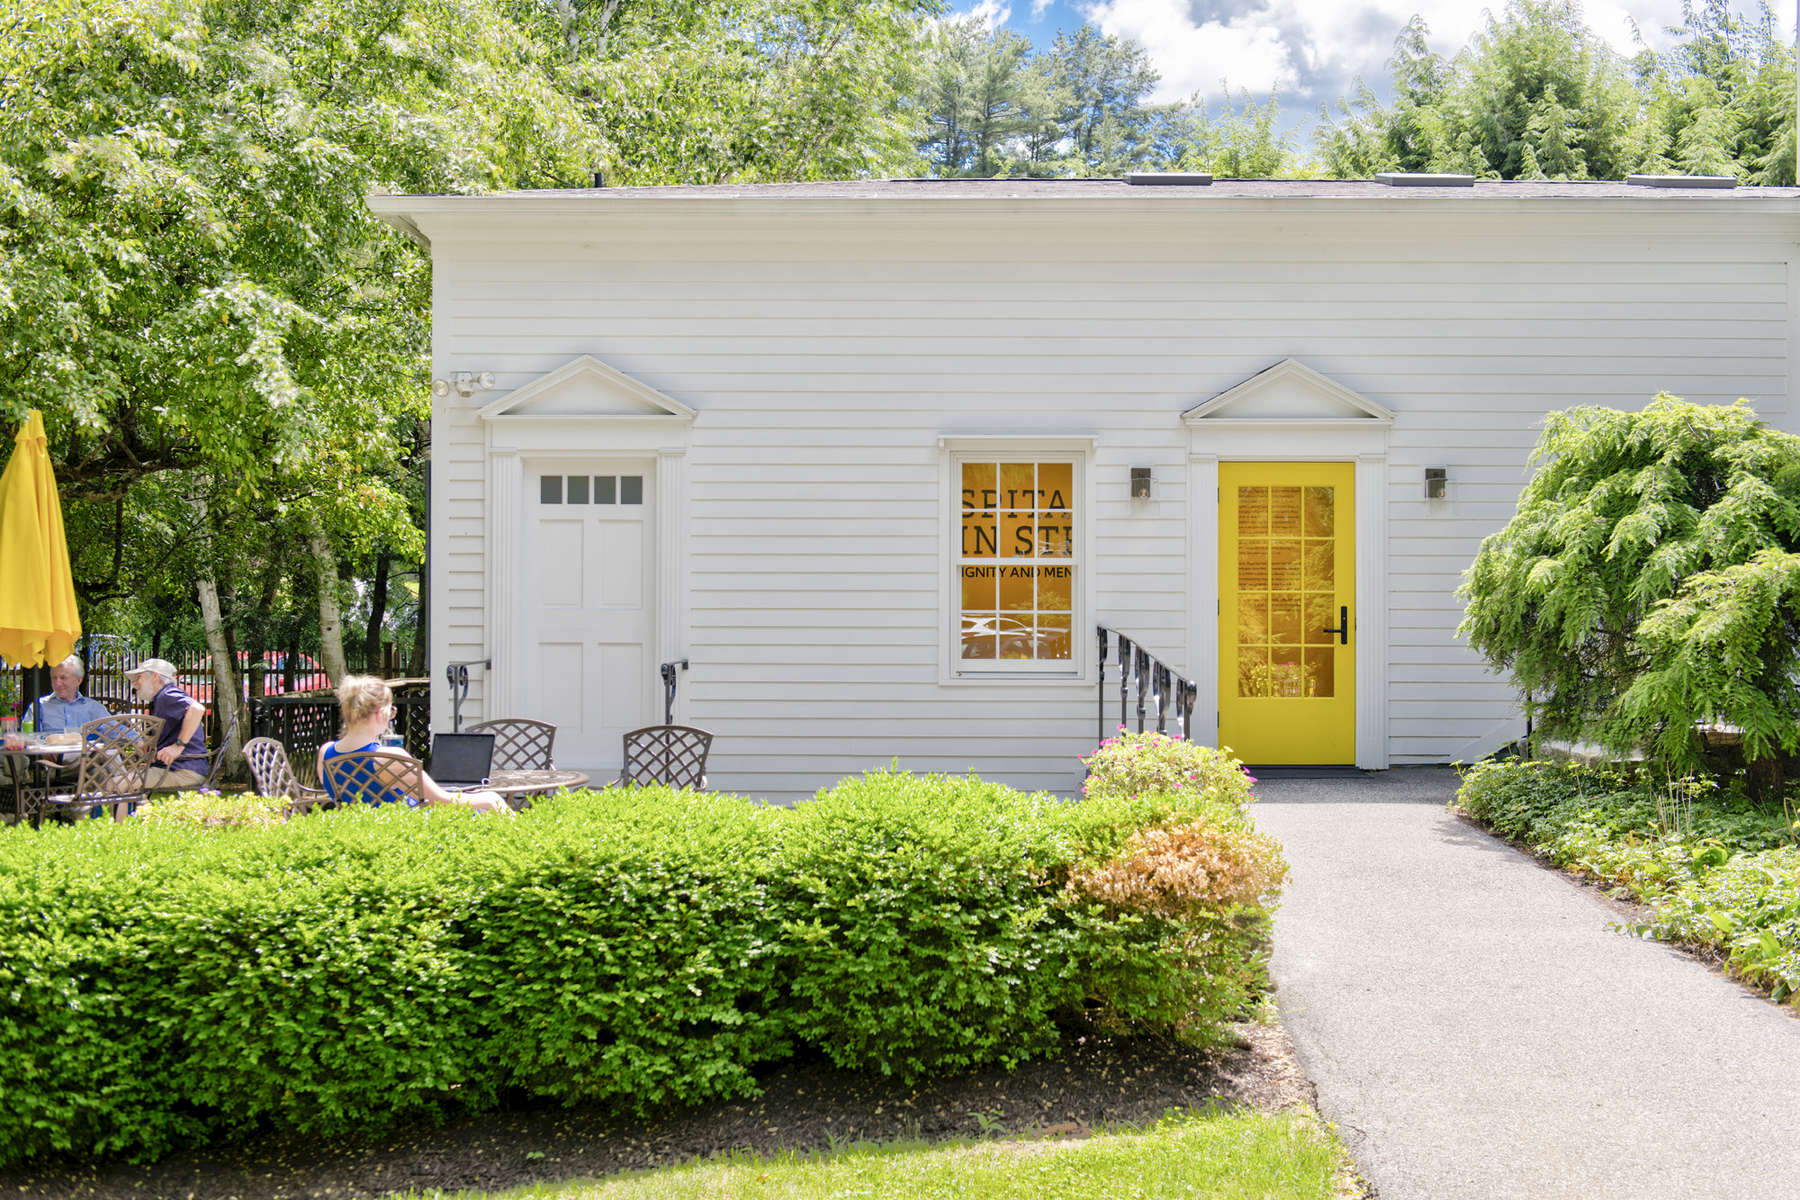 Austen Riggs is a voluntary, therapeutic long term residential community with an emphasis on intensive psychotherapy paired with a place for intellectual scholarship based in the Bershires. 2019 will mark it's 100th year of operation. IKD was charged to fully renovate an existing structure to house a new public gallery space that will be home to a permanent exhibition that celebrates the long history and values of the center. IKD is acting as the design architect, exhibition, and graphic designer for this project in partnership with Pam  Sandler Architects.